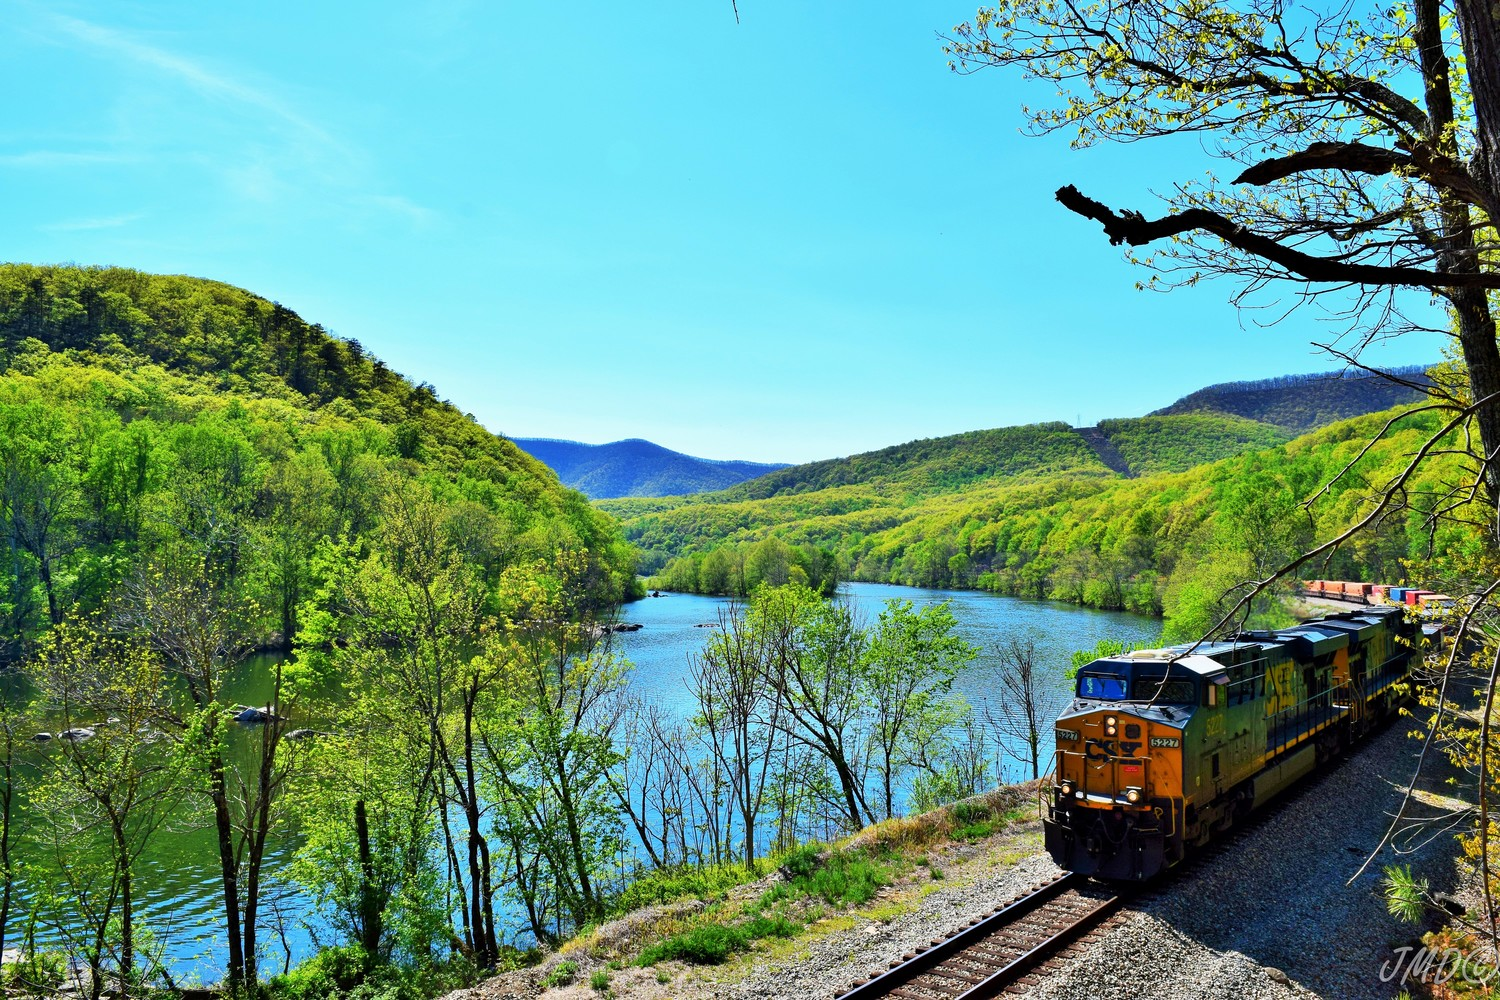 Amherst-Co-mountain-train-river_Rt-130_Julie-Deutsch-image.jpg